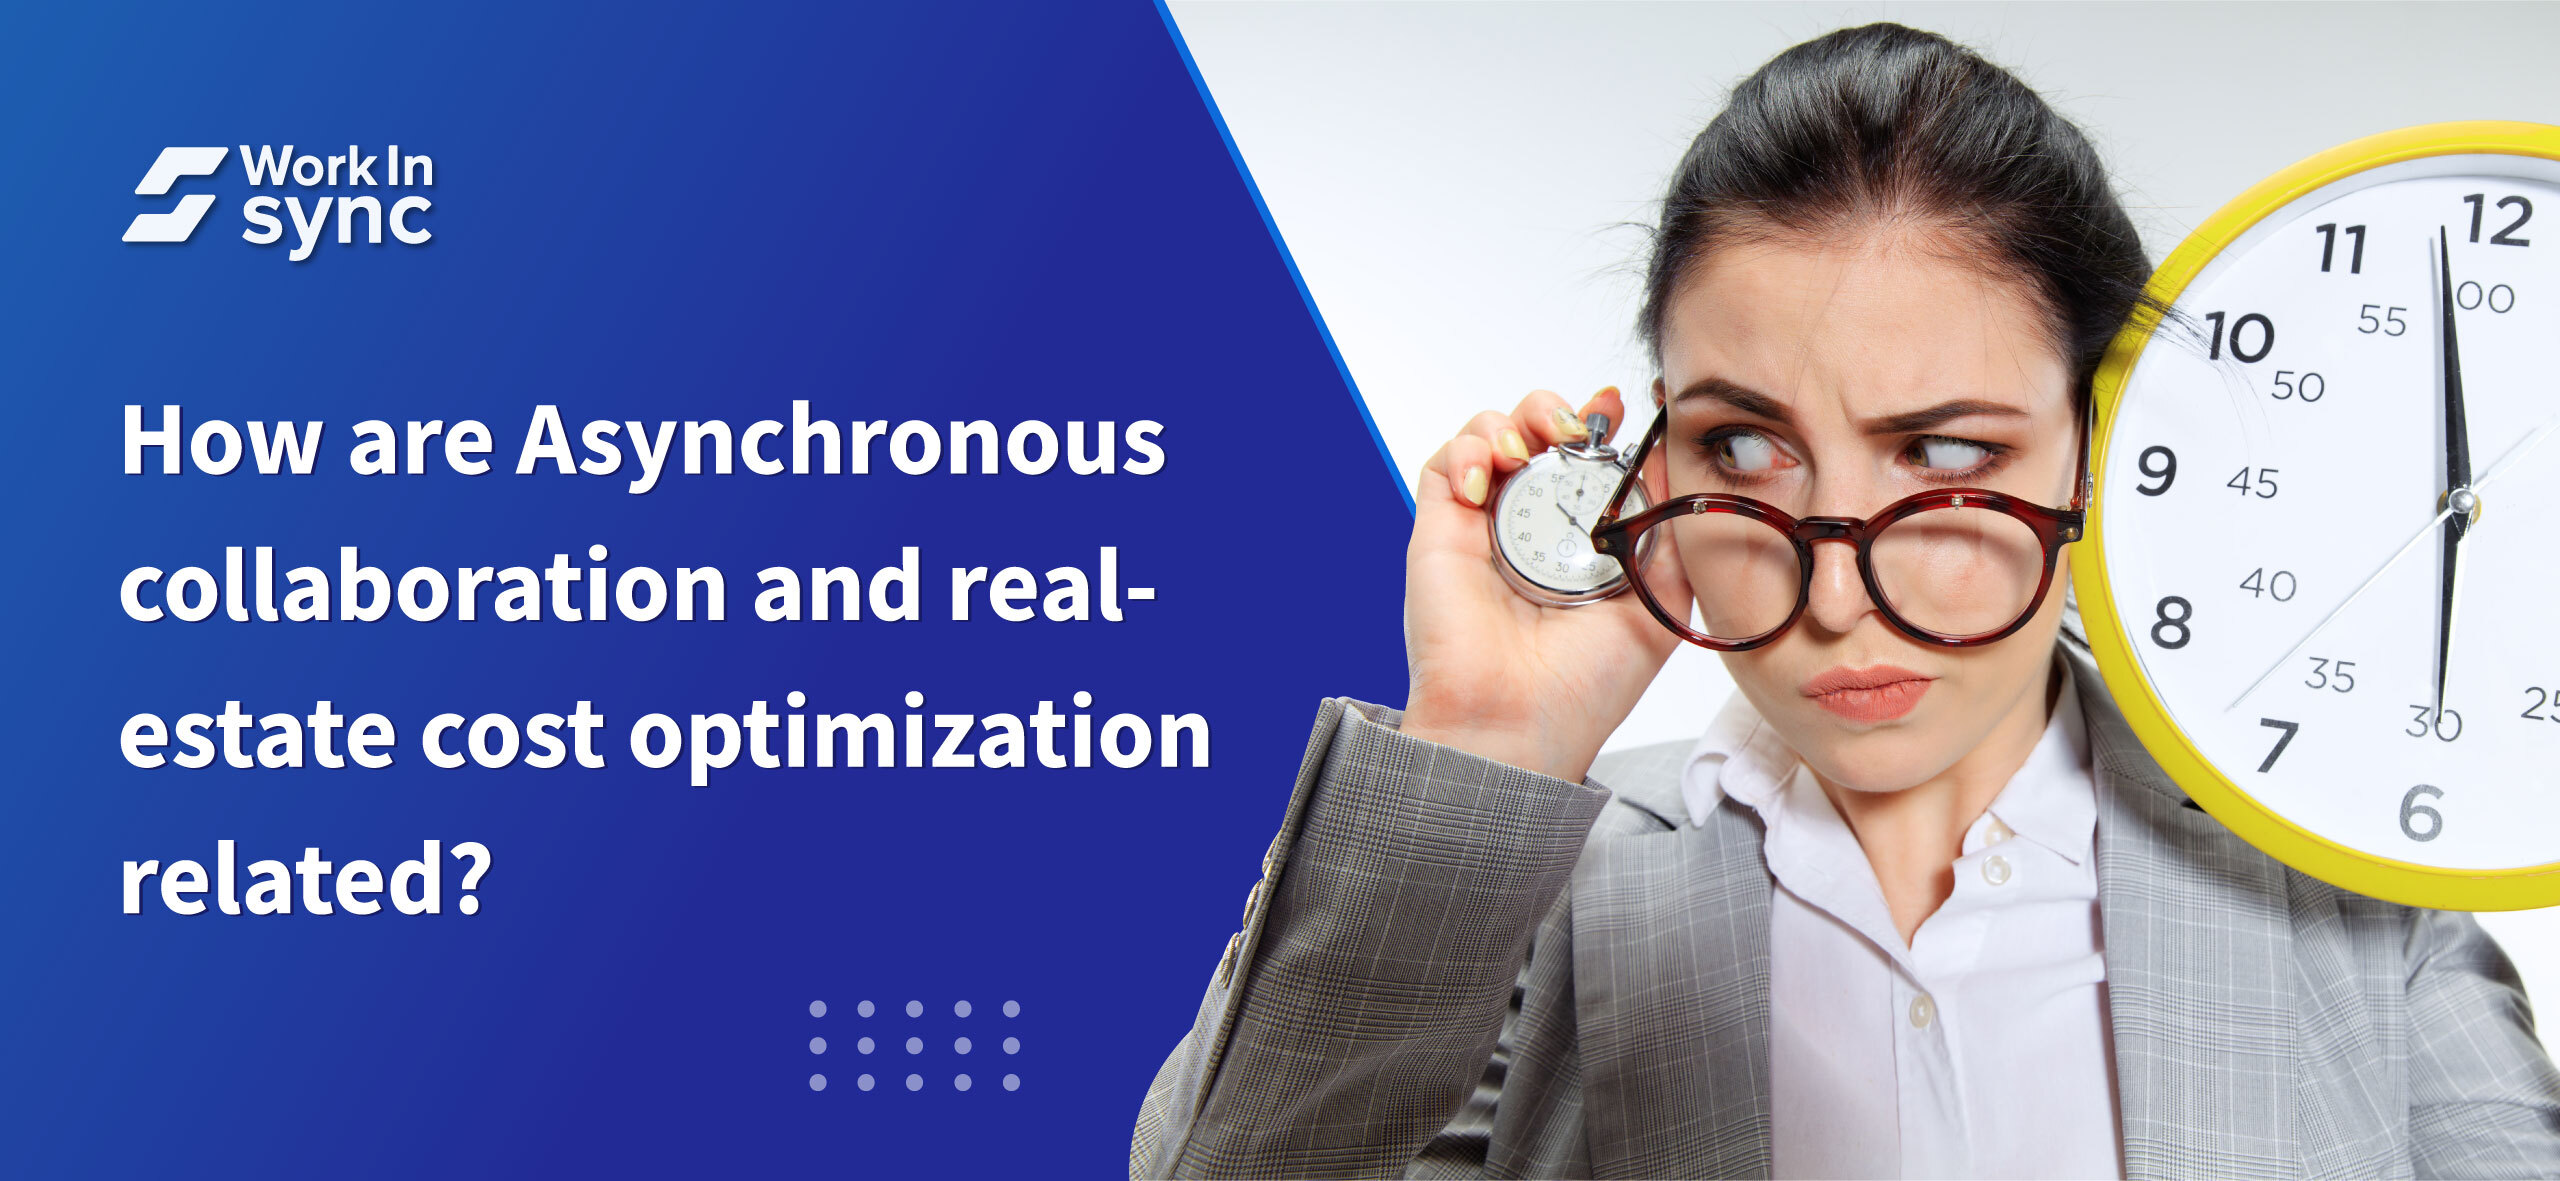 How are Asynchronous Collaboration & Real-estate Optimization Related?